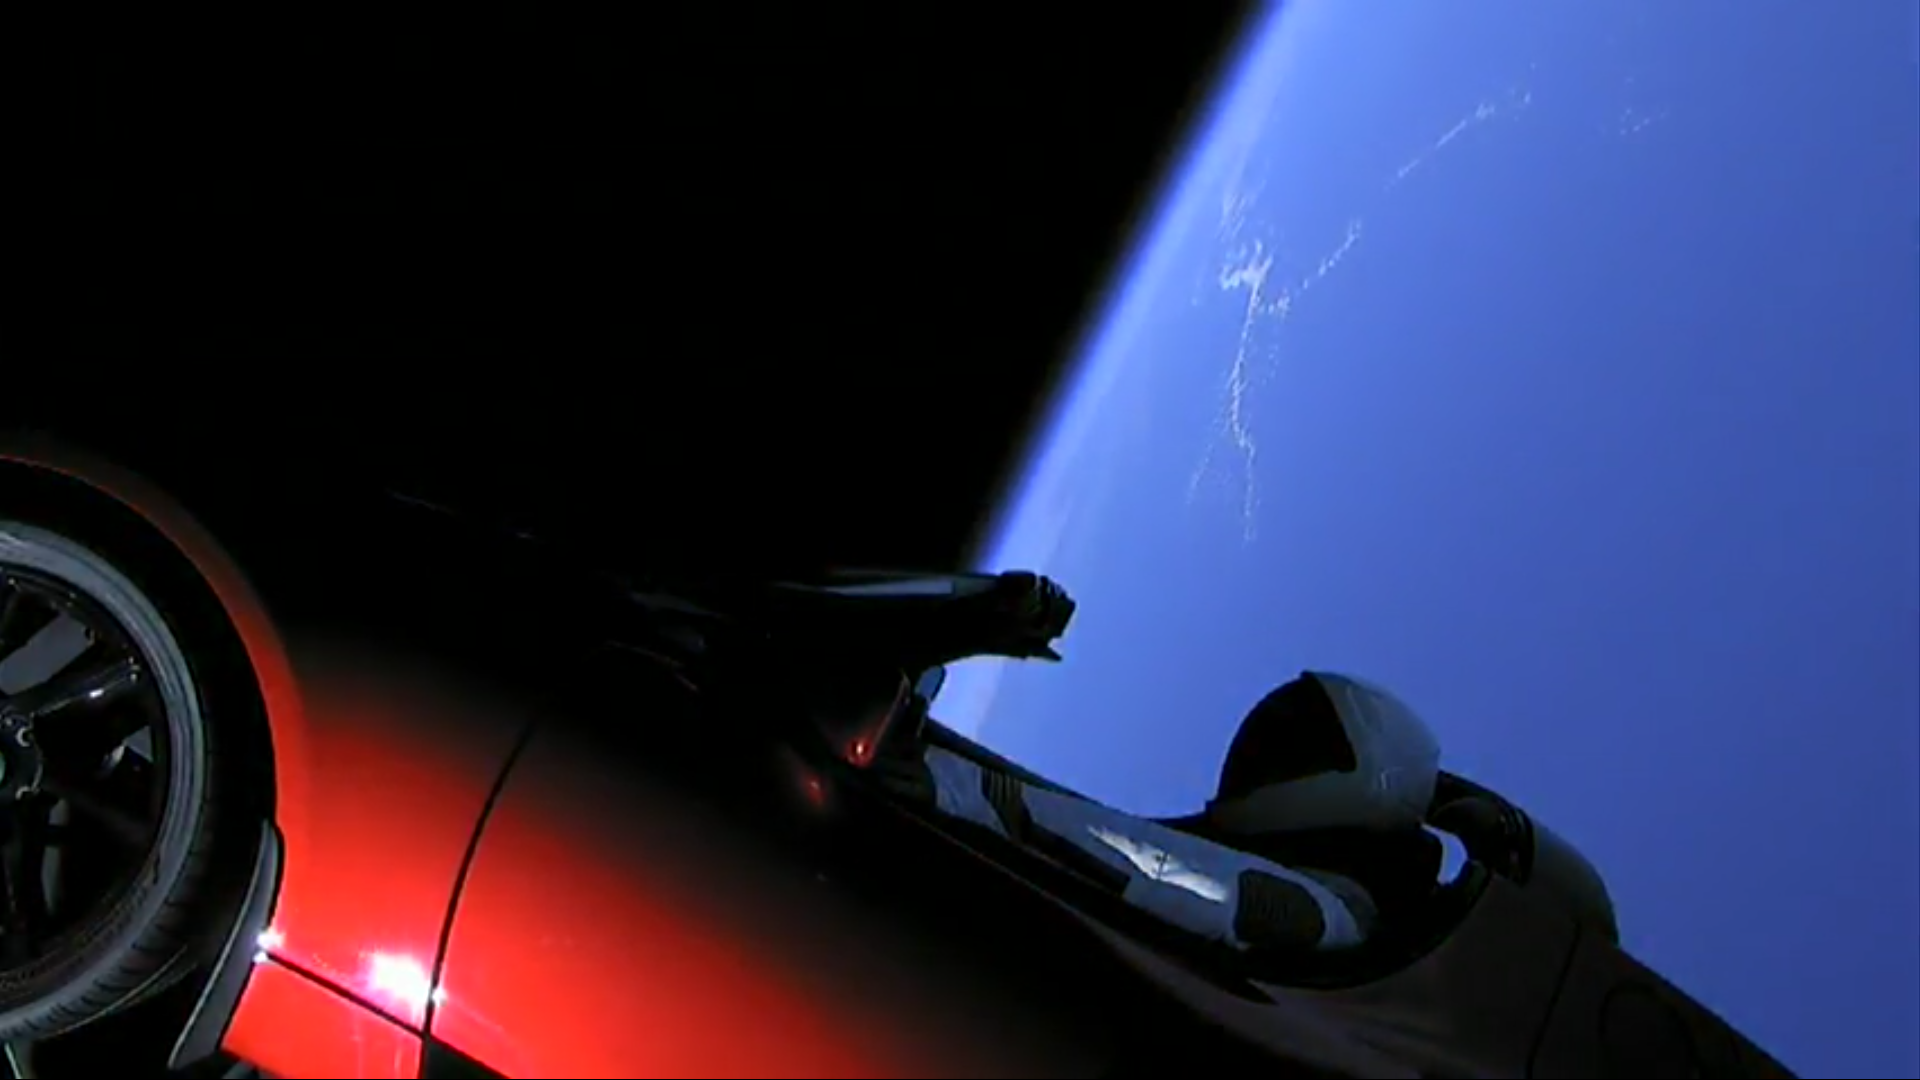 Starman in his Tesla heading to Mars